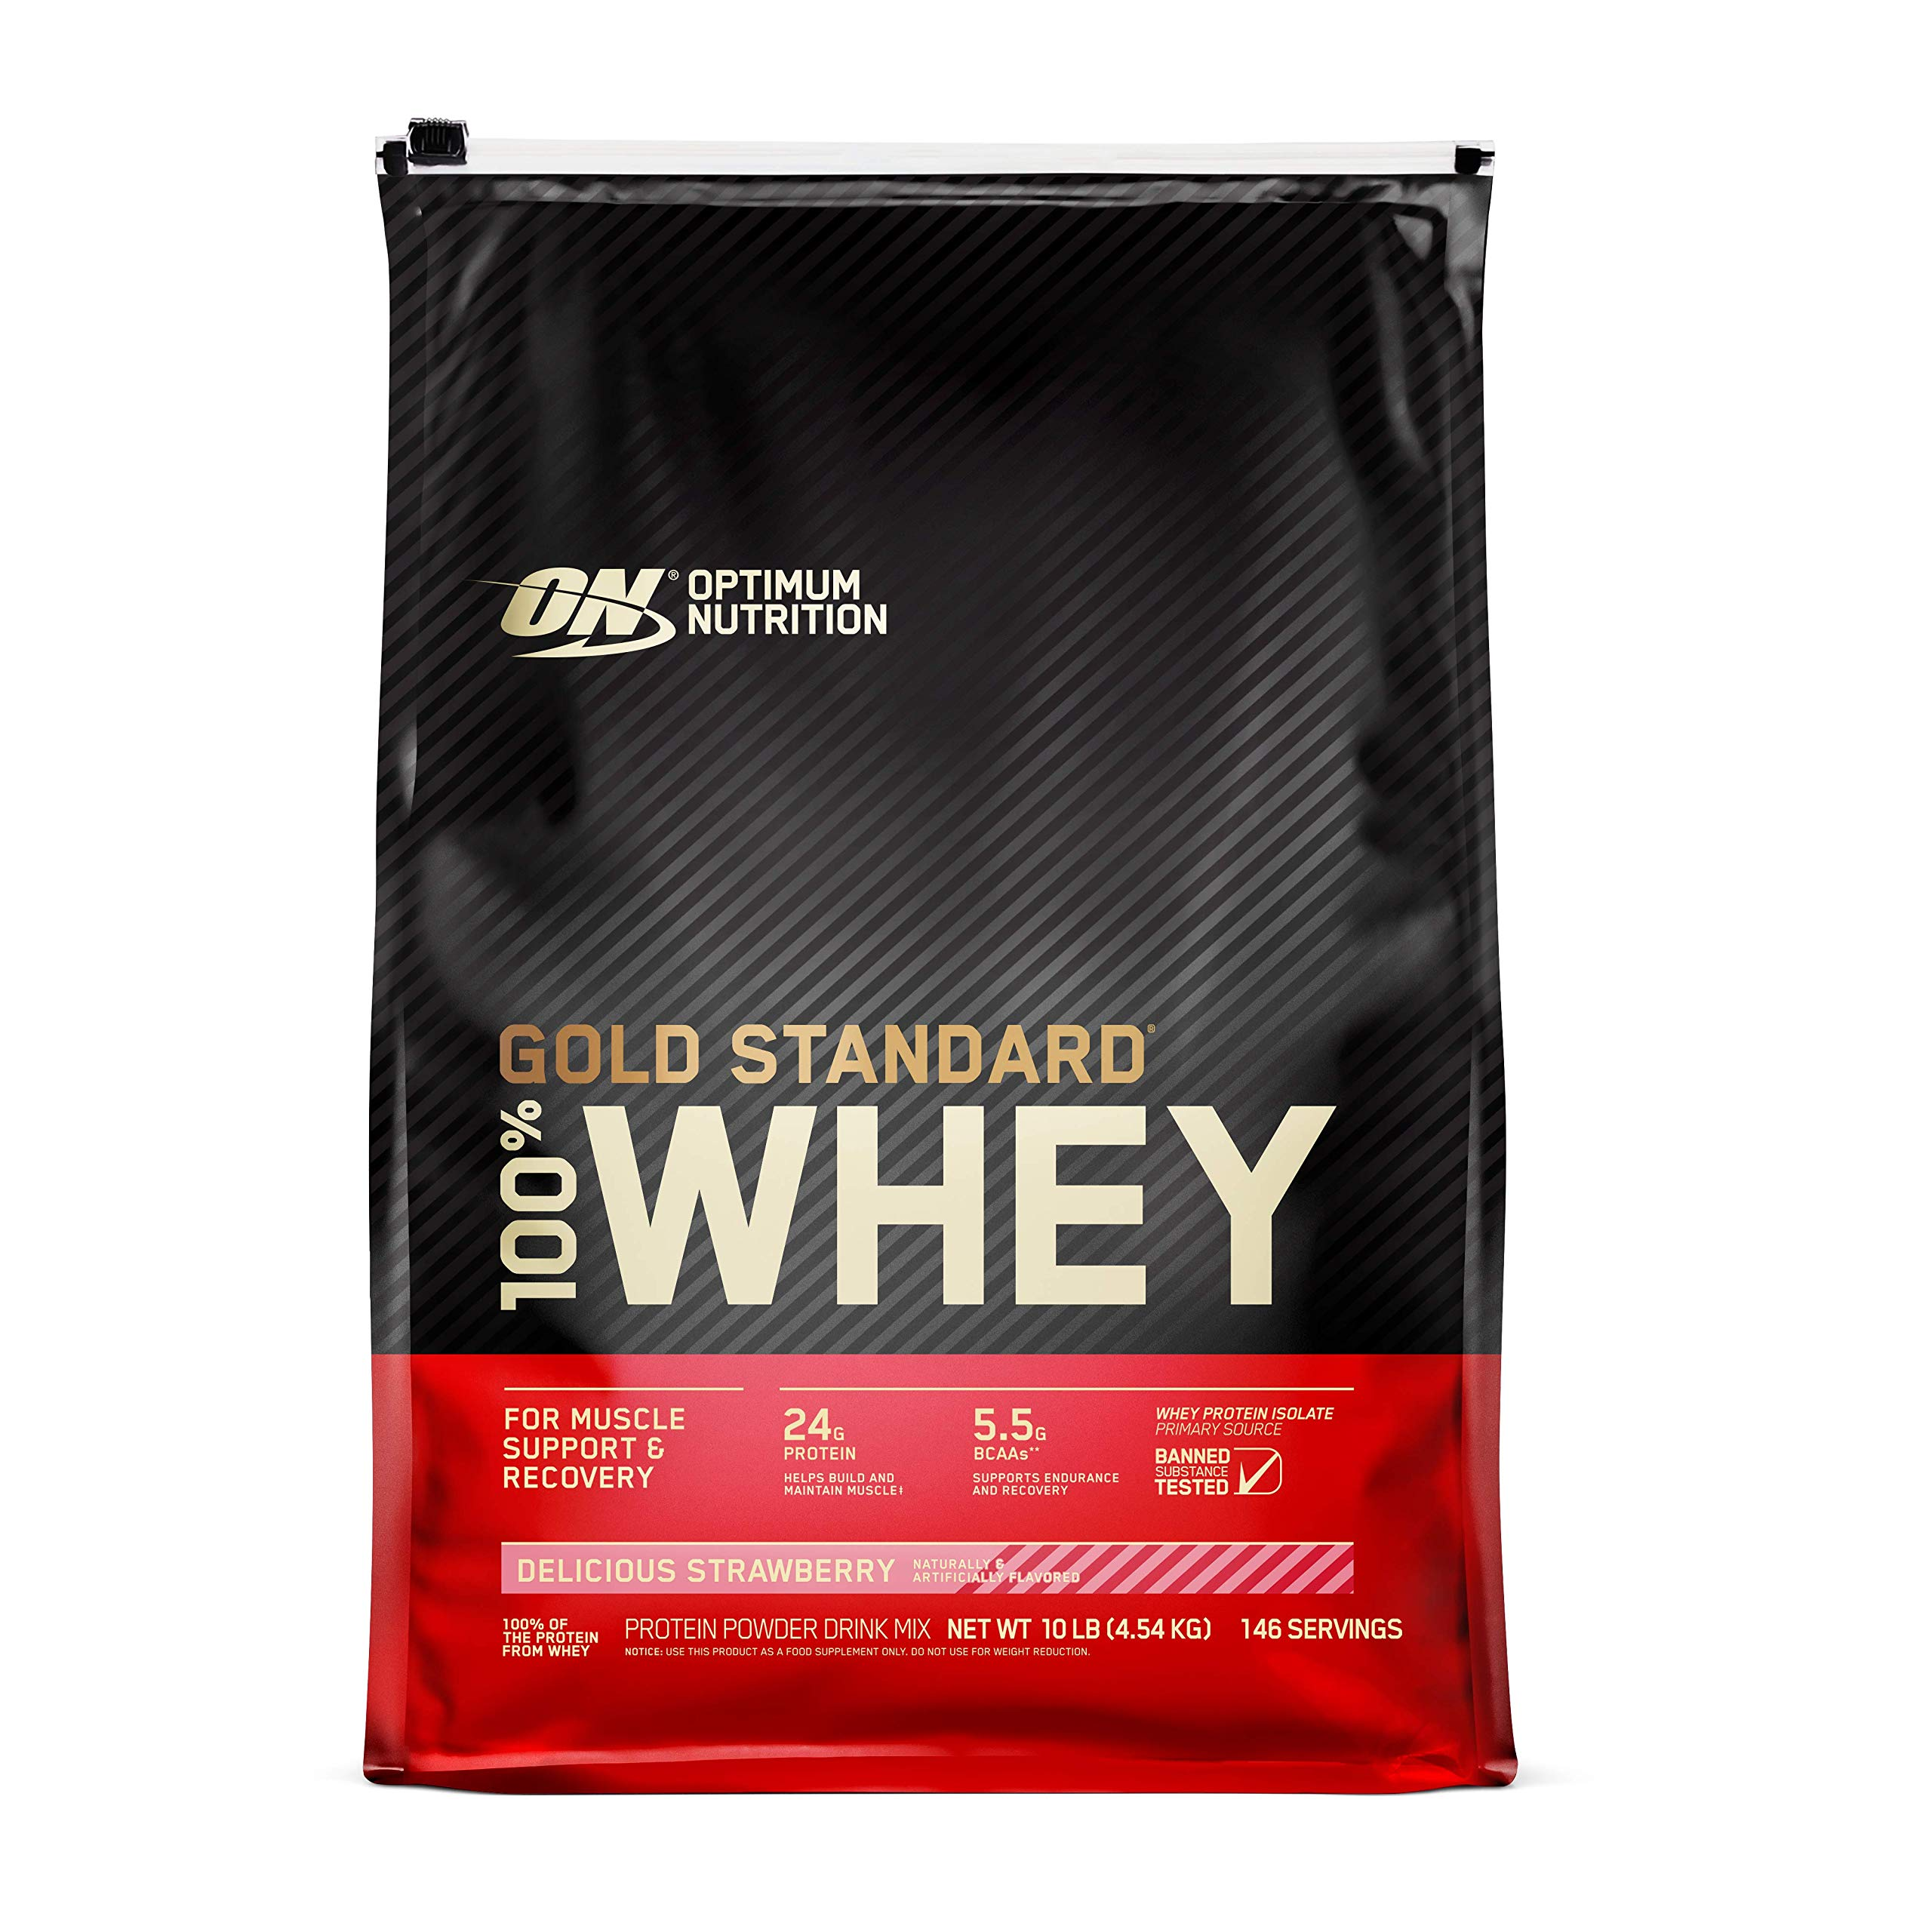 Optimum Nutrition Gold Standard 100% Whey Protein Powder, Delicious Strawberry, 10 Pound (Packaging May Vary)